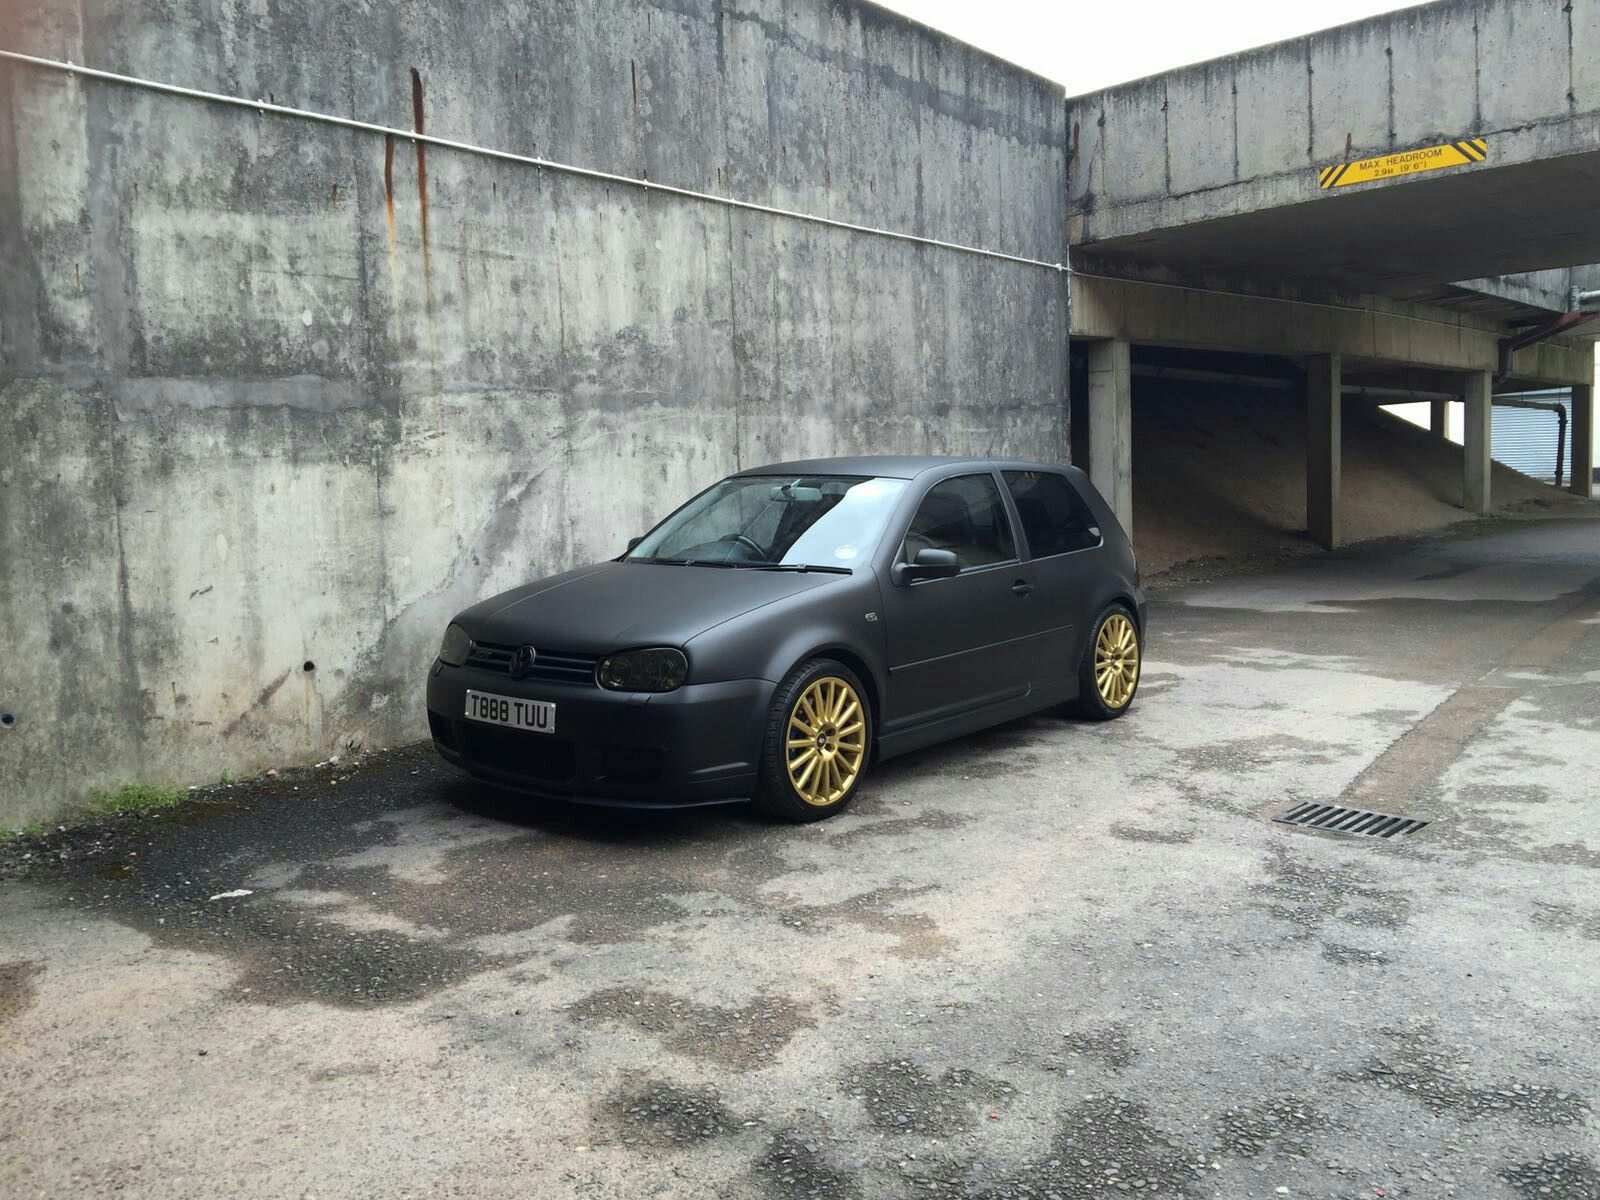 matt black golf r32 with light tints looking mean volkswagen golf mk4 r32 pinterest golf. Black Bedroom Furniture Sets. Home Design Ideas